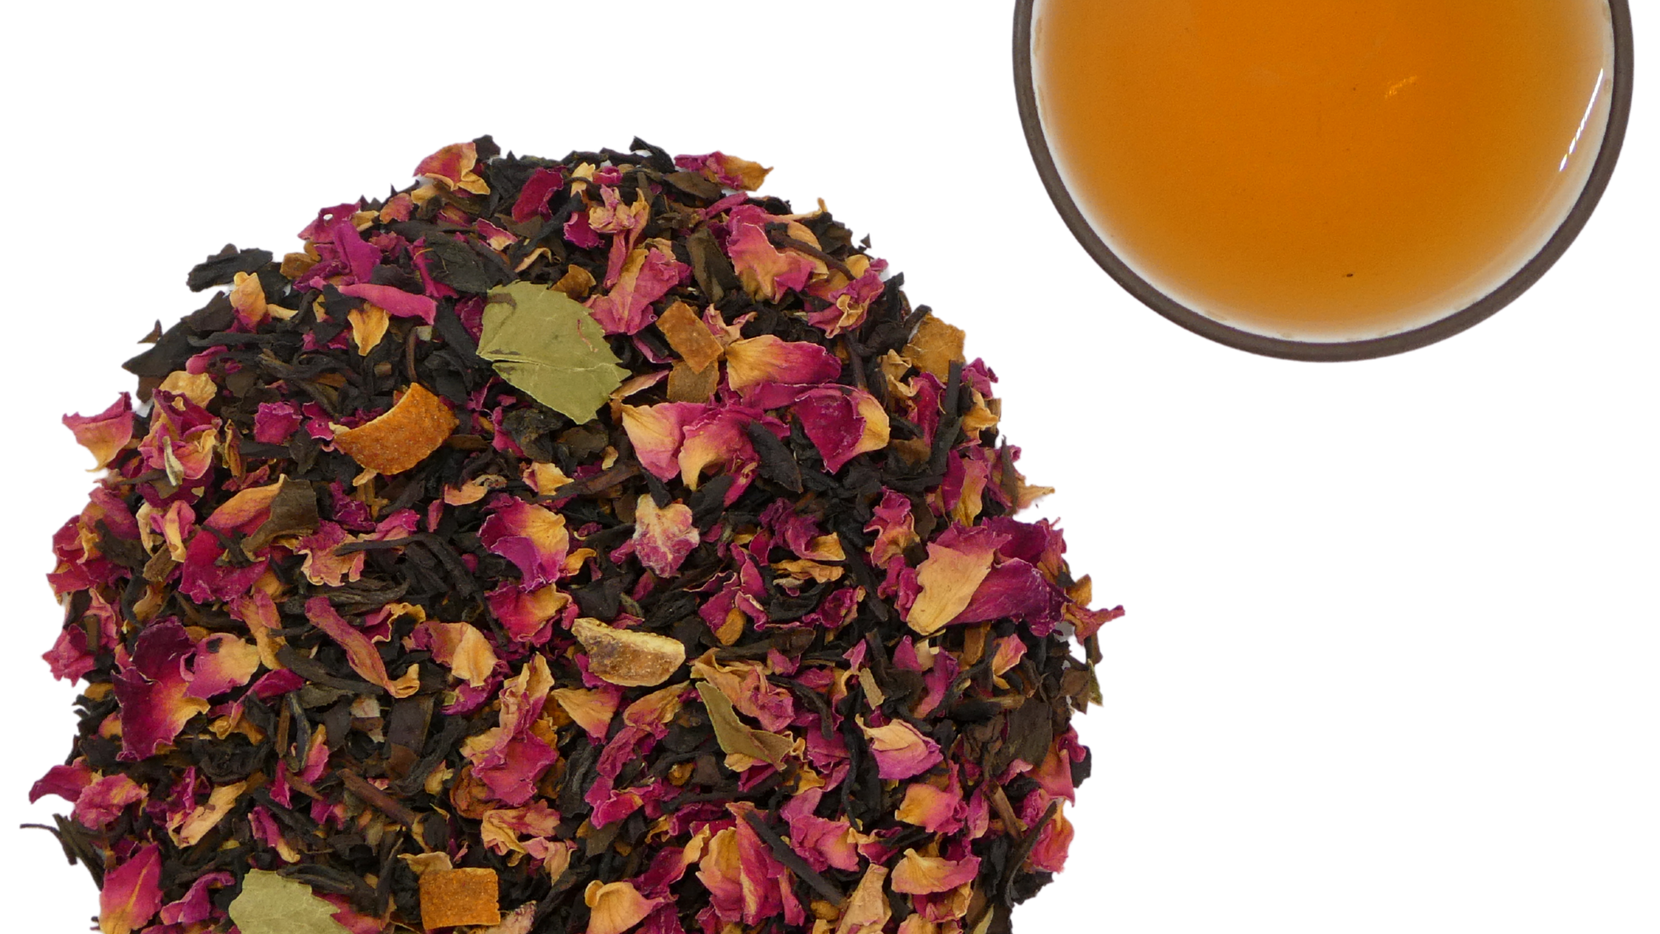 The Cultured Cup sells a special Quaran-tea blend benefitting Cafe Momentum